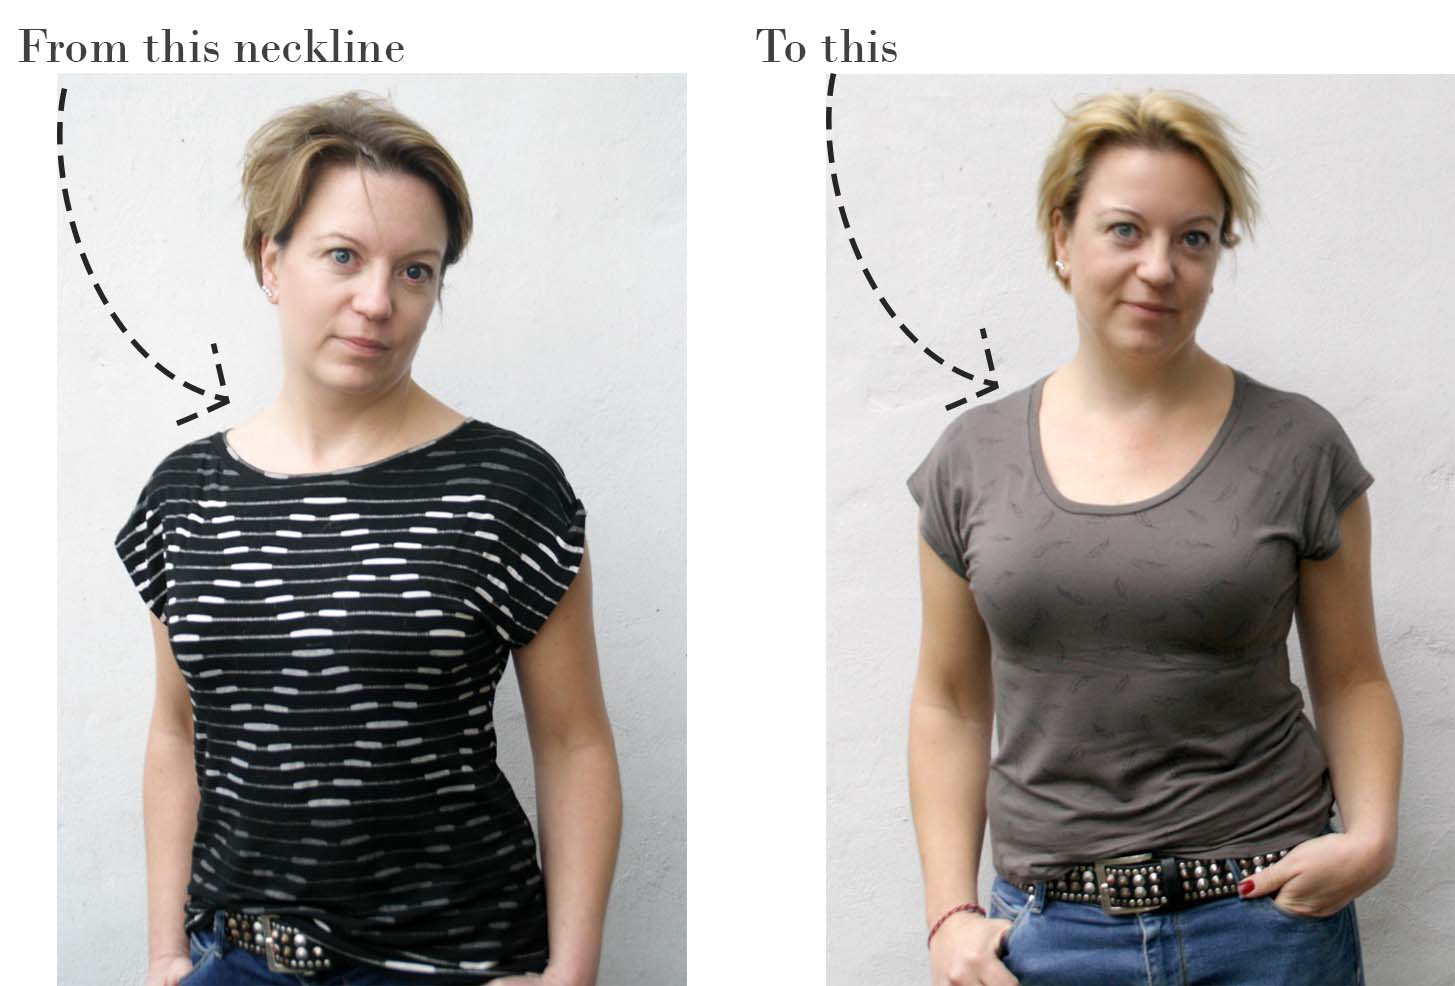 Design your own: How to change the neckline